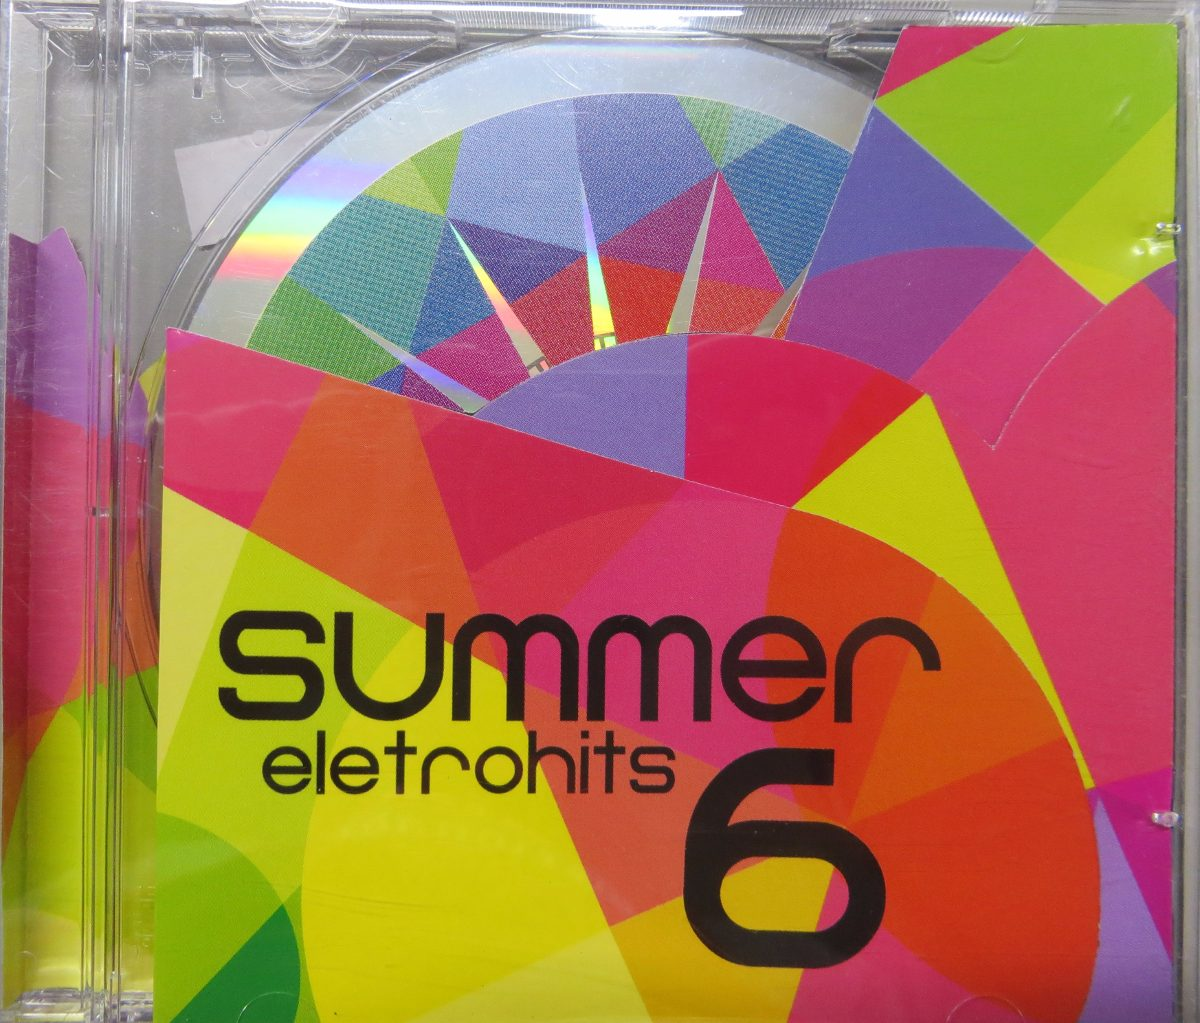 cd summer eletrohits 6 gratis